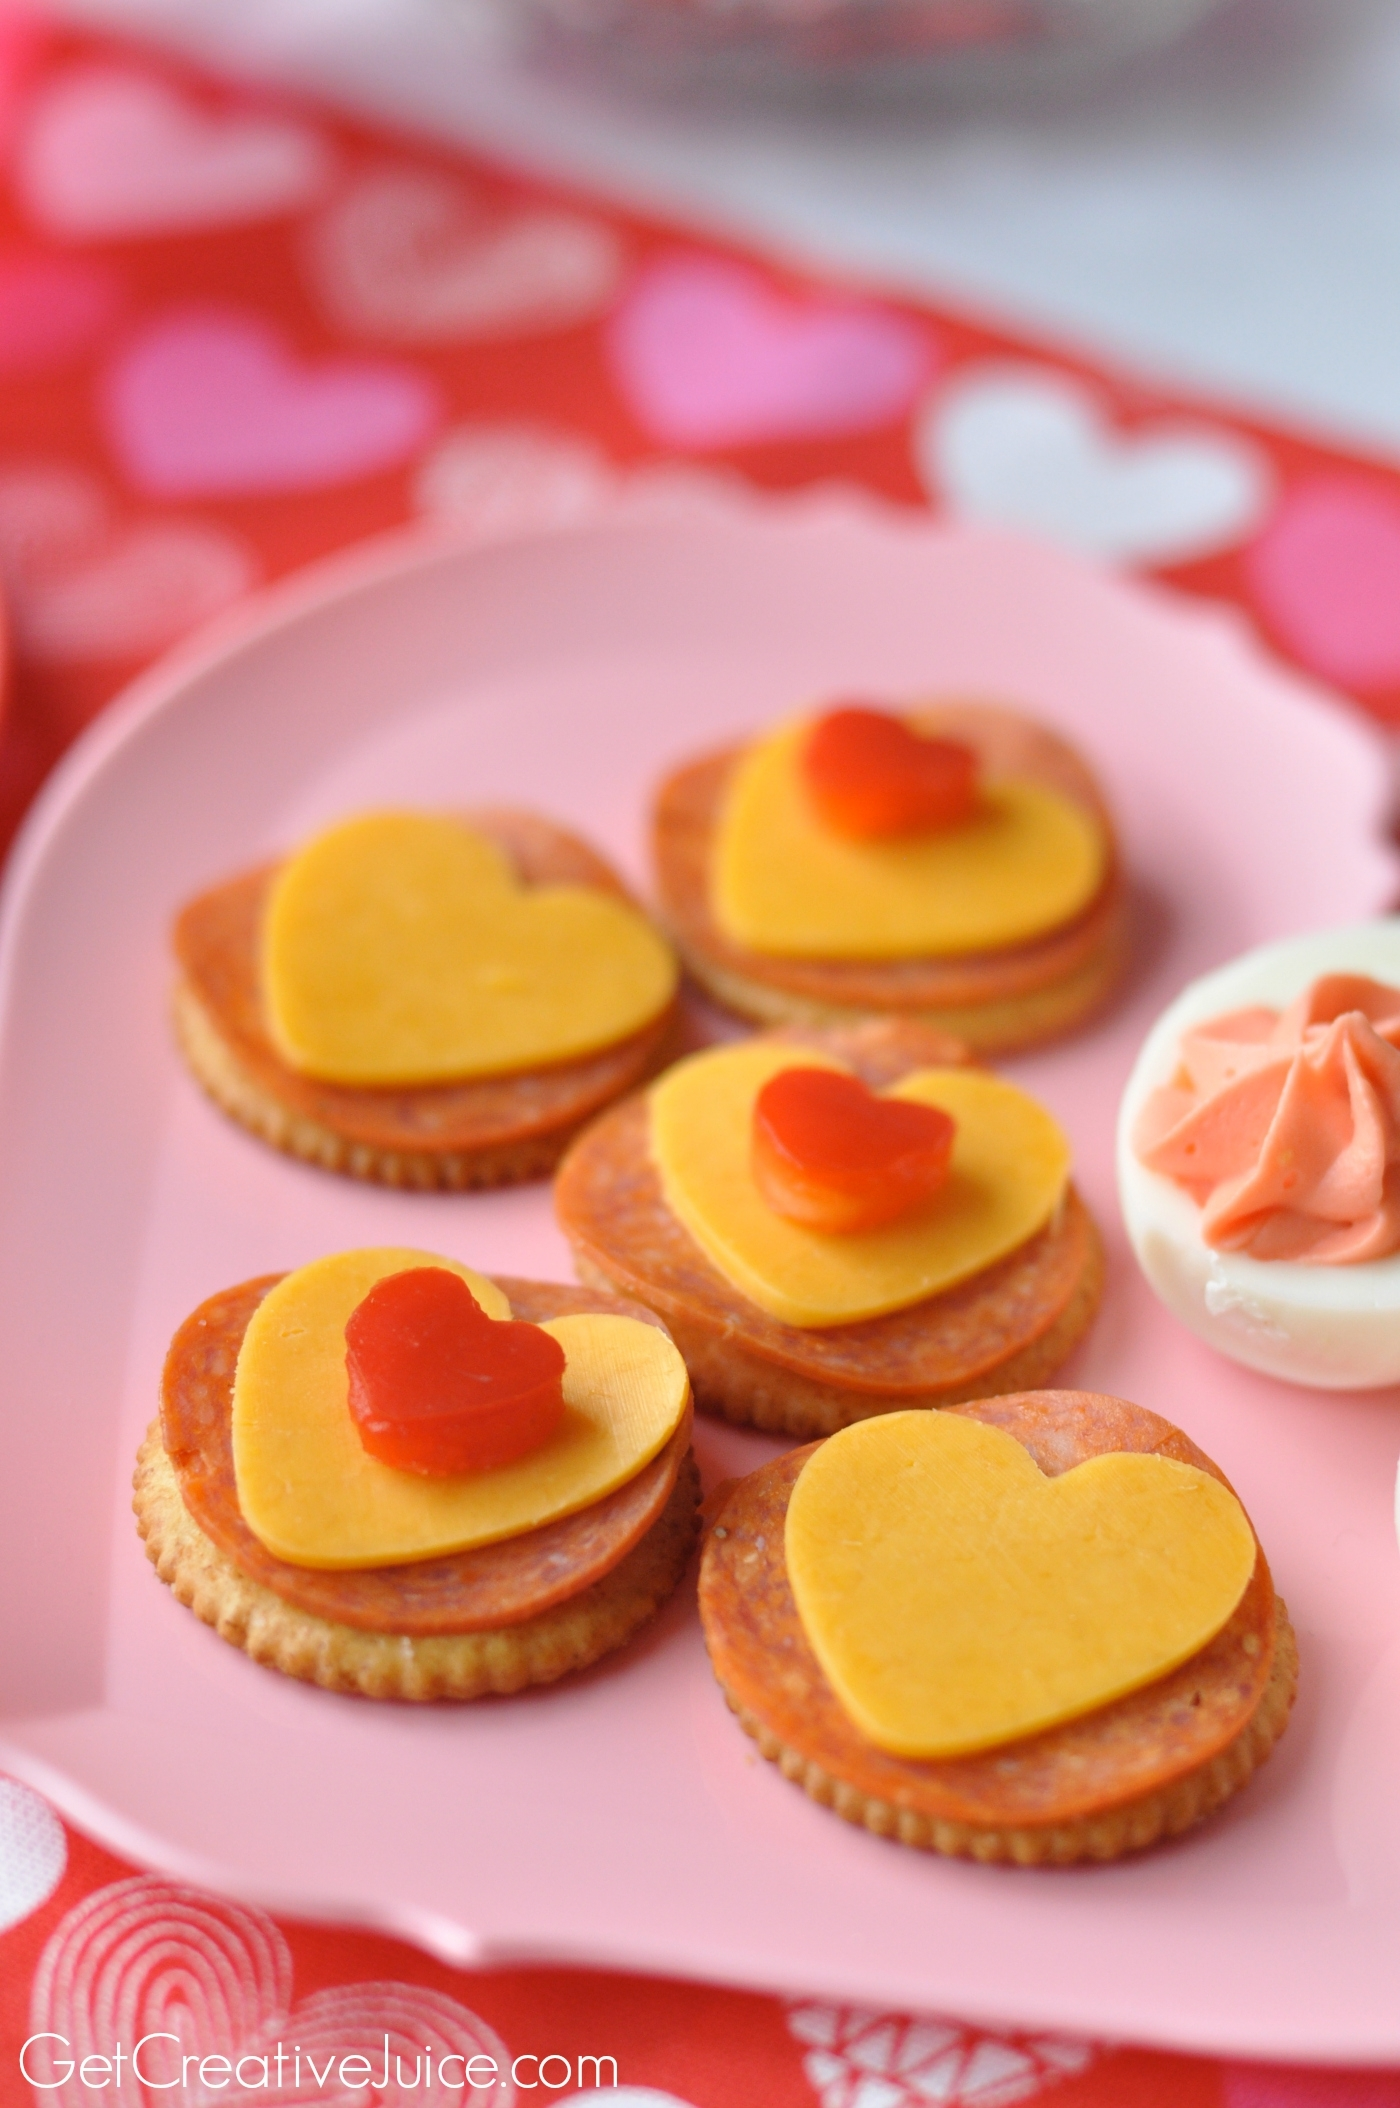 Valentine Lunch Ideas And Snack Ideas - Creative Juice throughout Fun Snack Ideas For Meetings